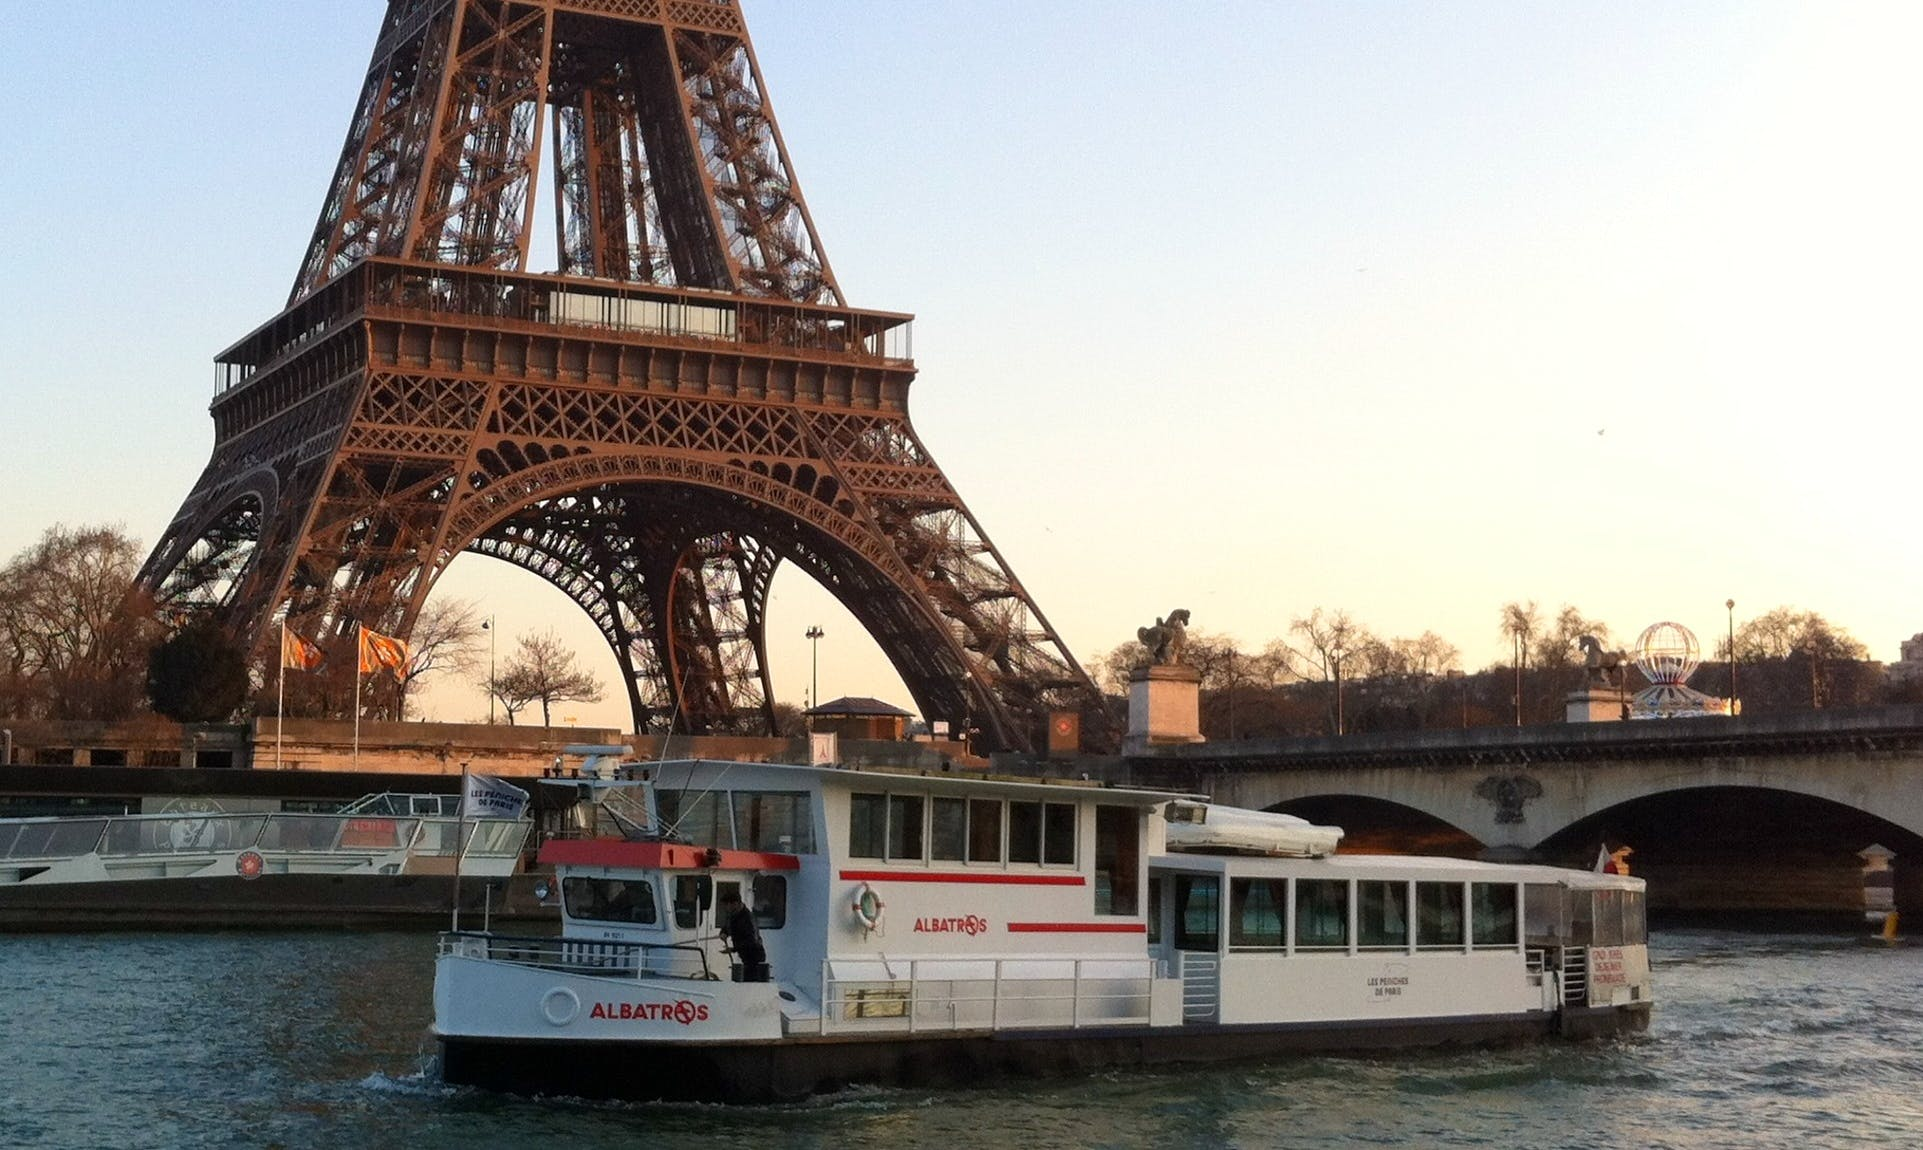 Charter a Albatros Canal Boat in Paris, France